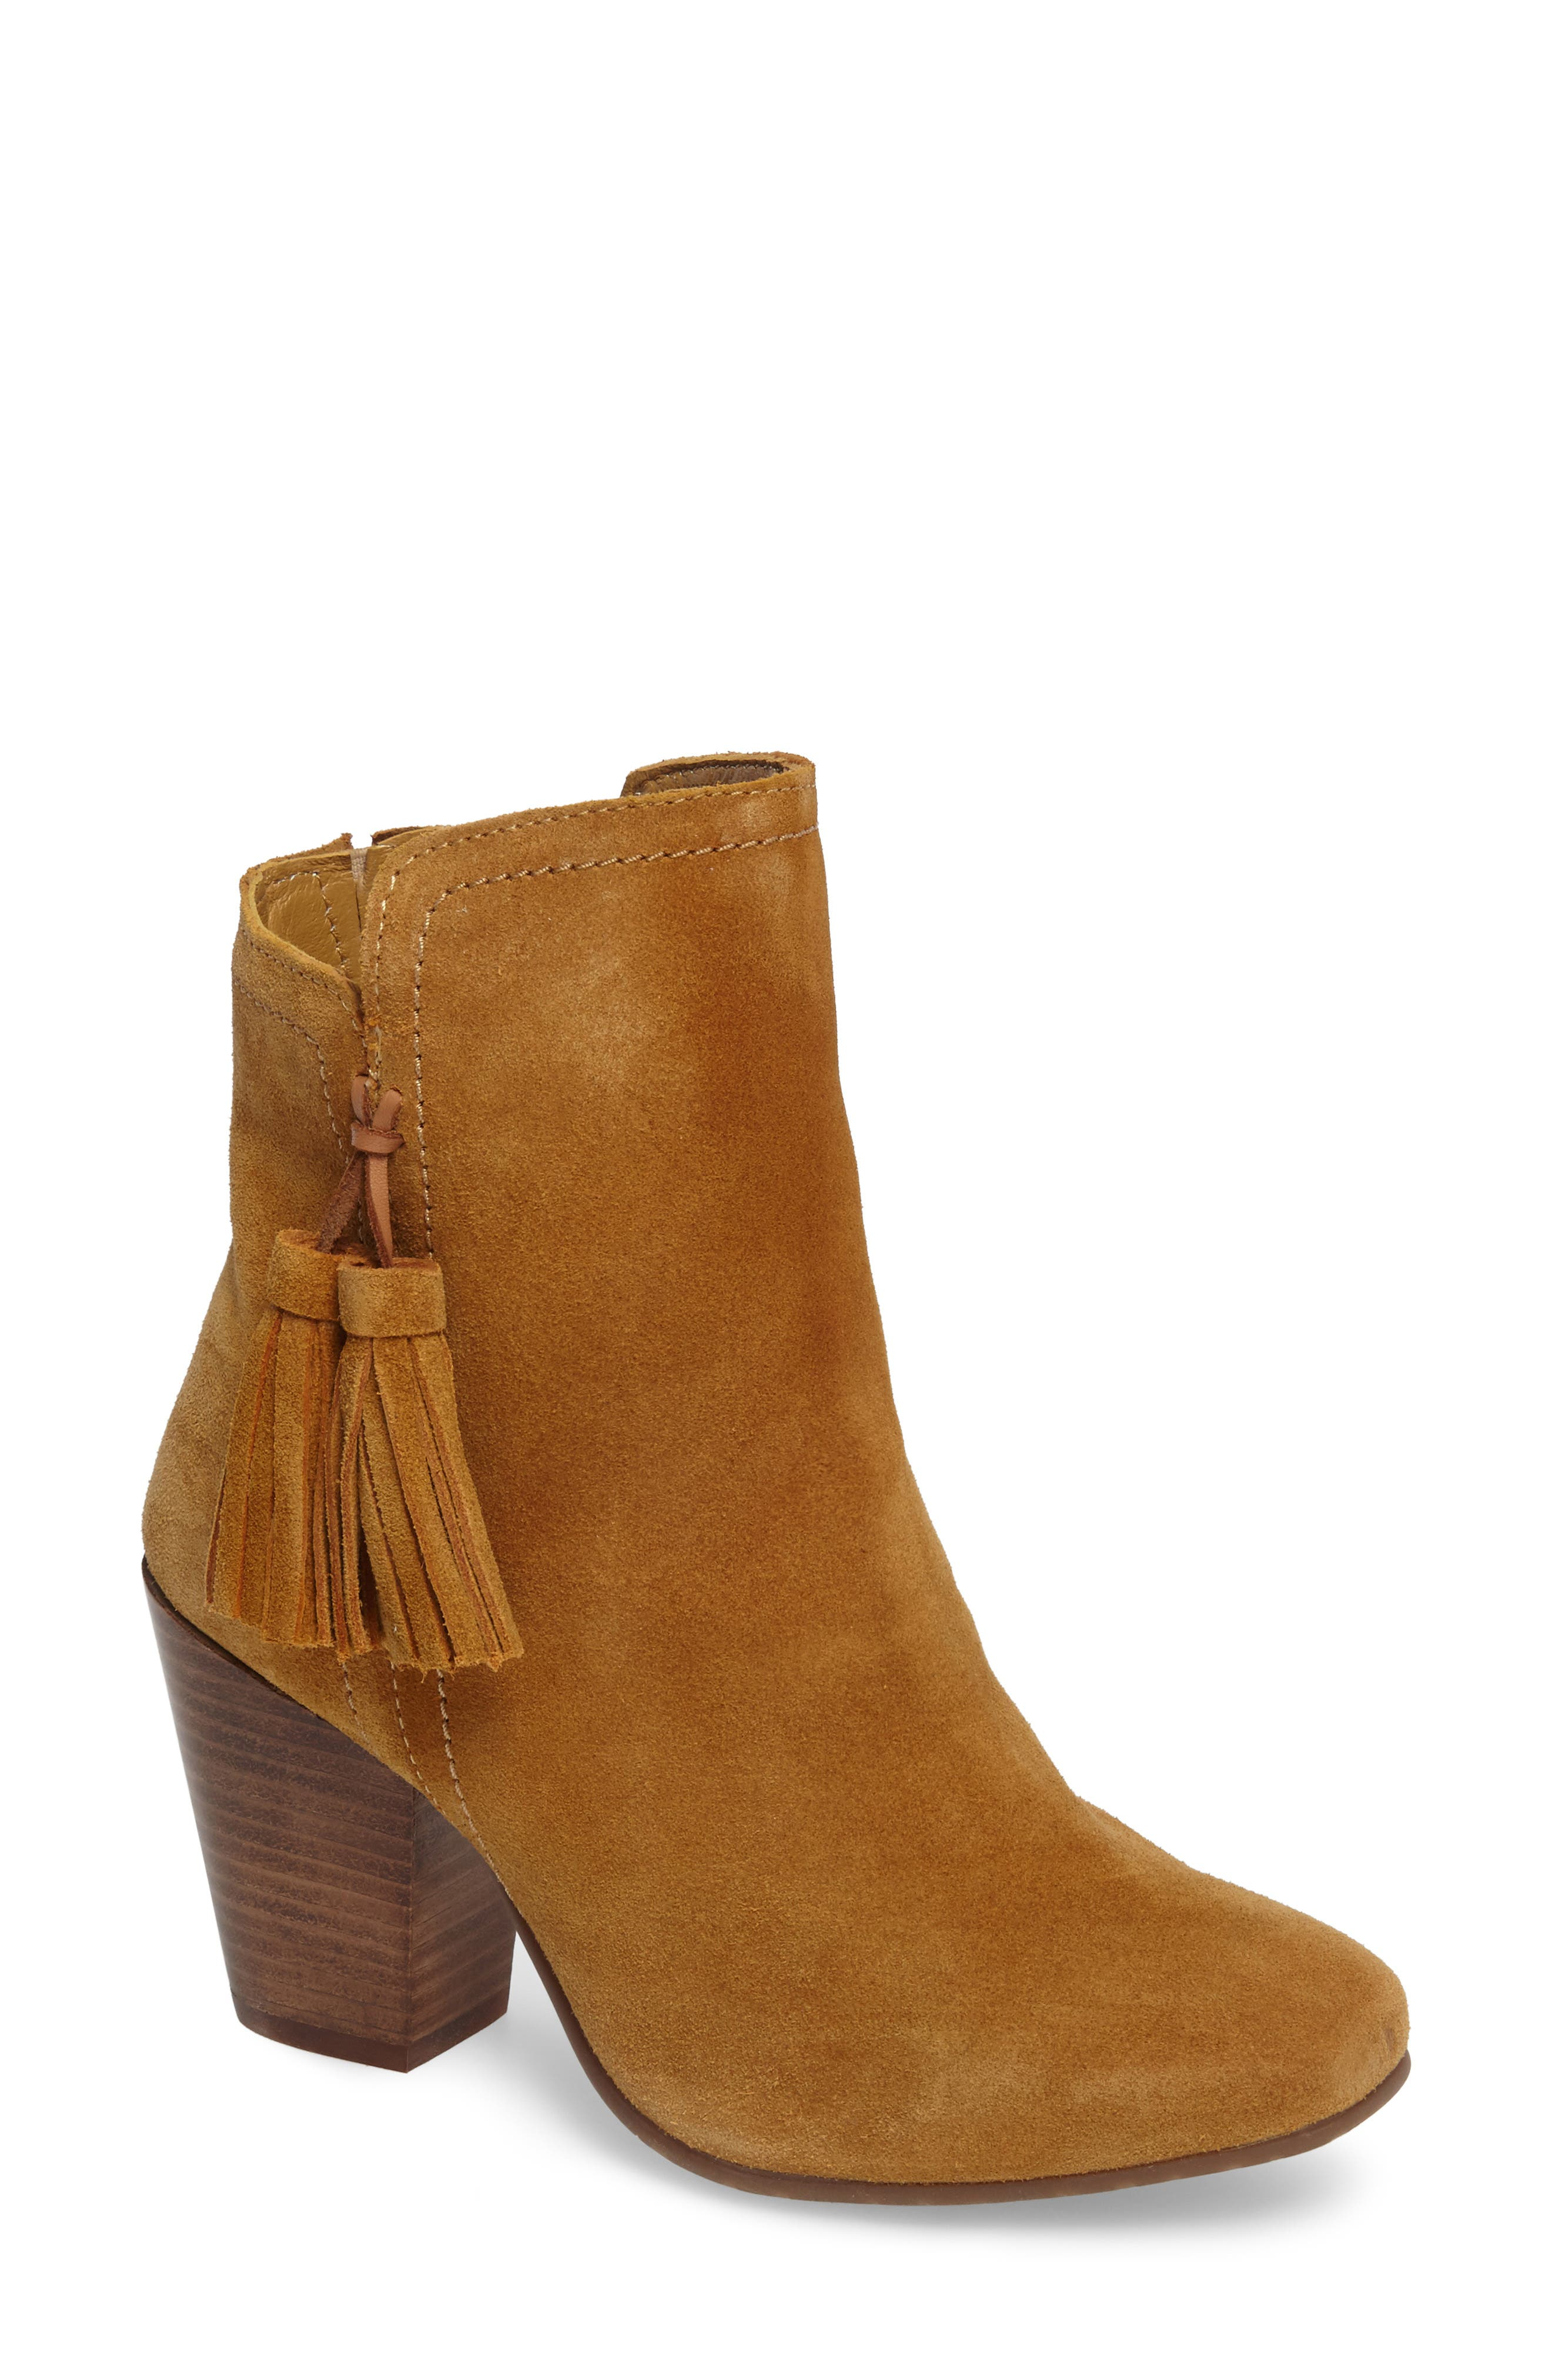 Daisee Billie Bootie,                         Main,                         color, Camel Suede